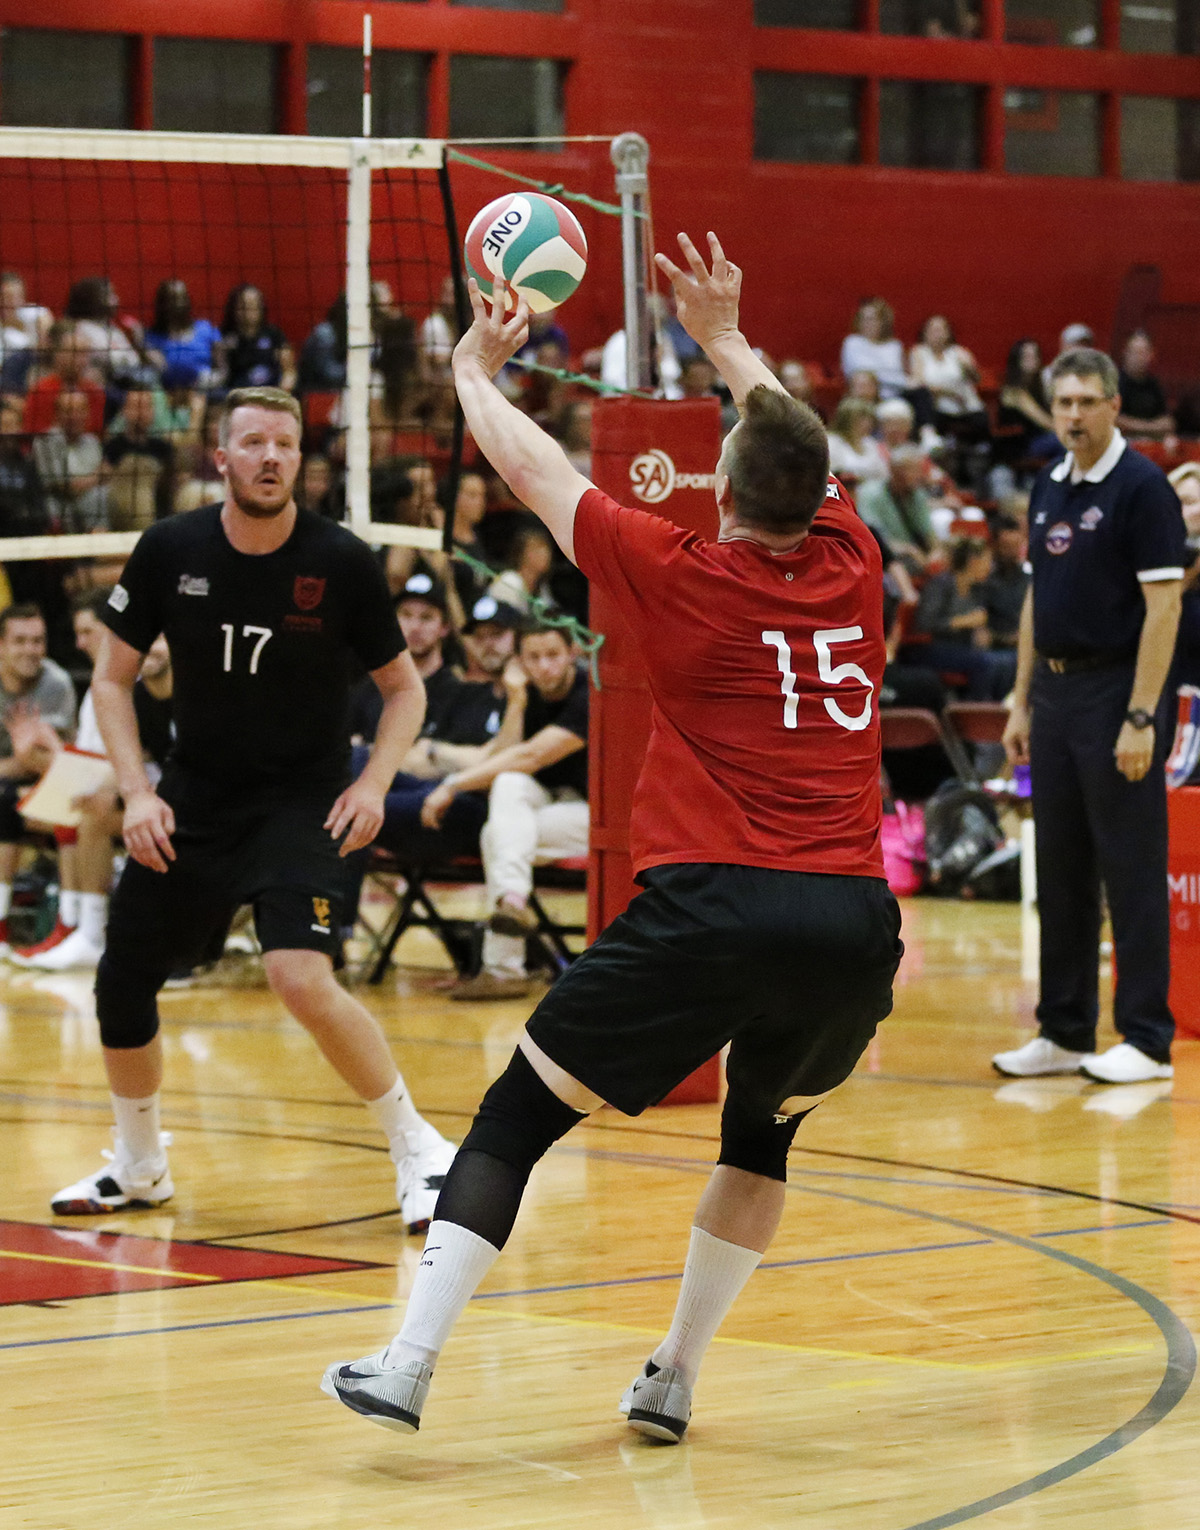 20180625 One Volleyball 1 DH 0755.jpg